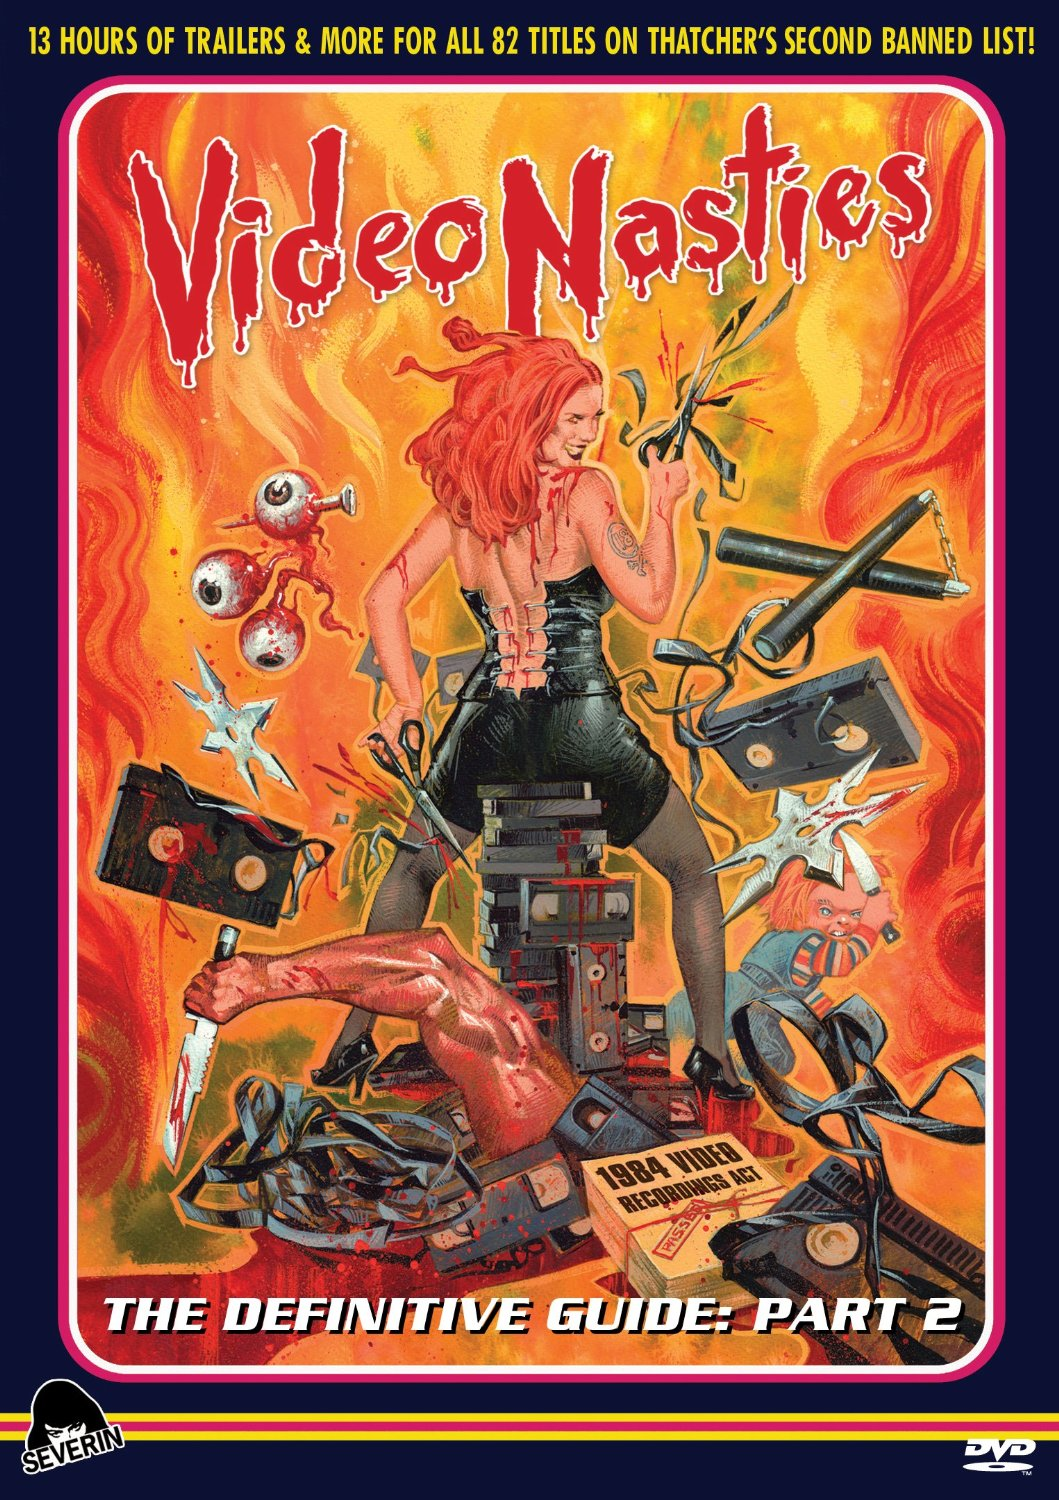 Video Nasties: The Definitive Guide, Part 2 (DVD Review)